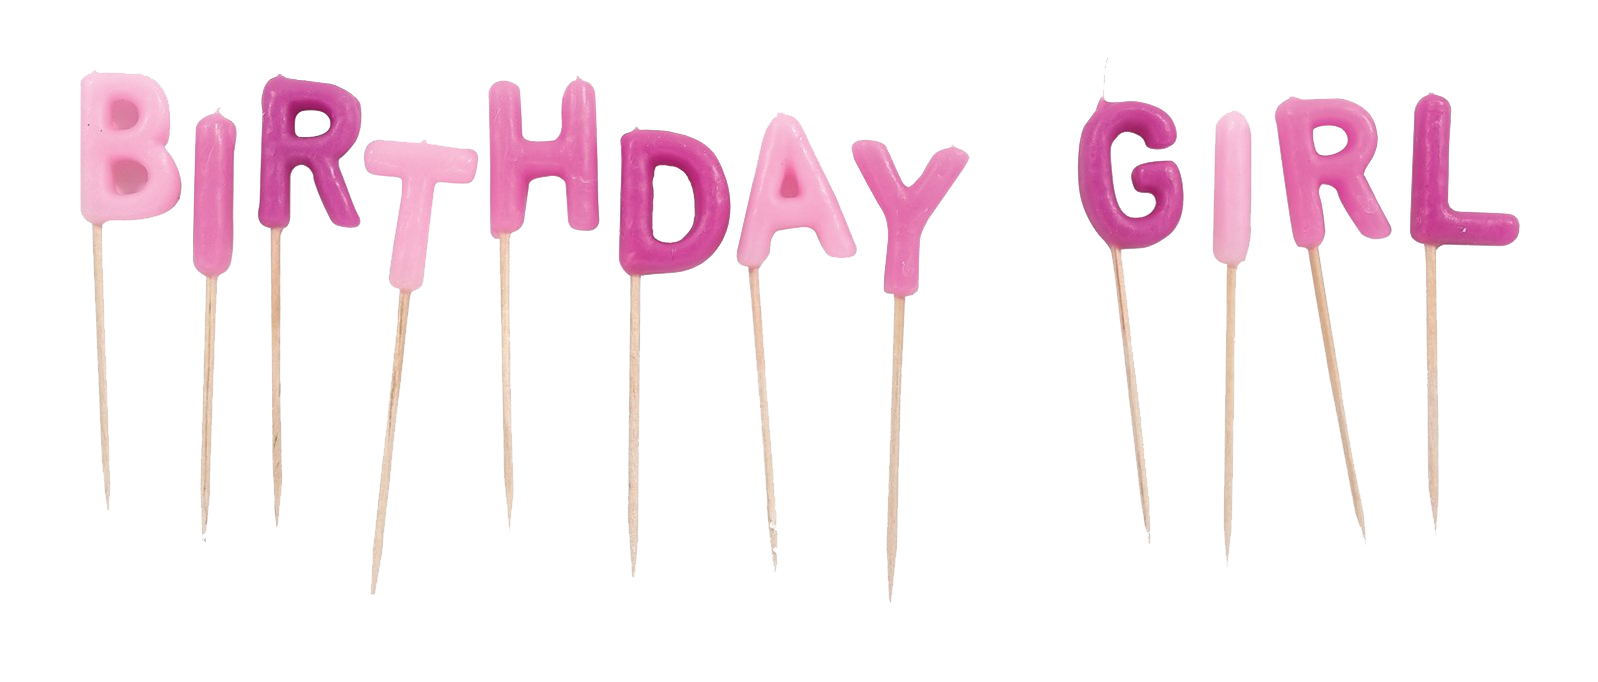 Lit number 1 and 5 birthday candles png. Transparent images all clipart image transparent